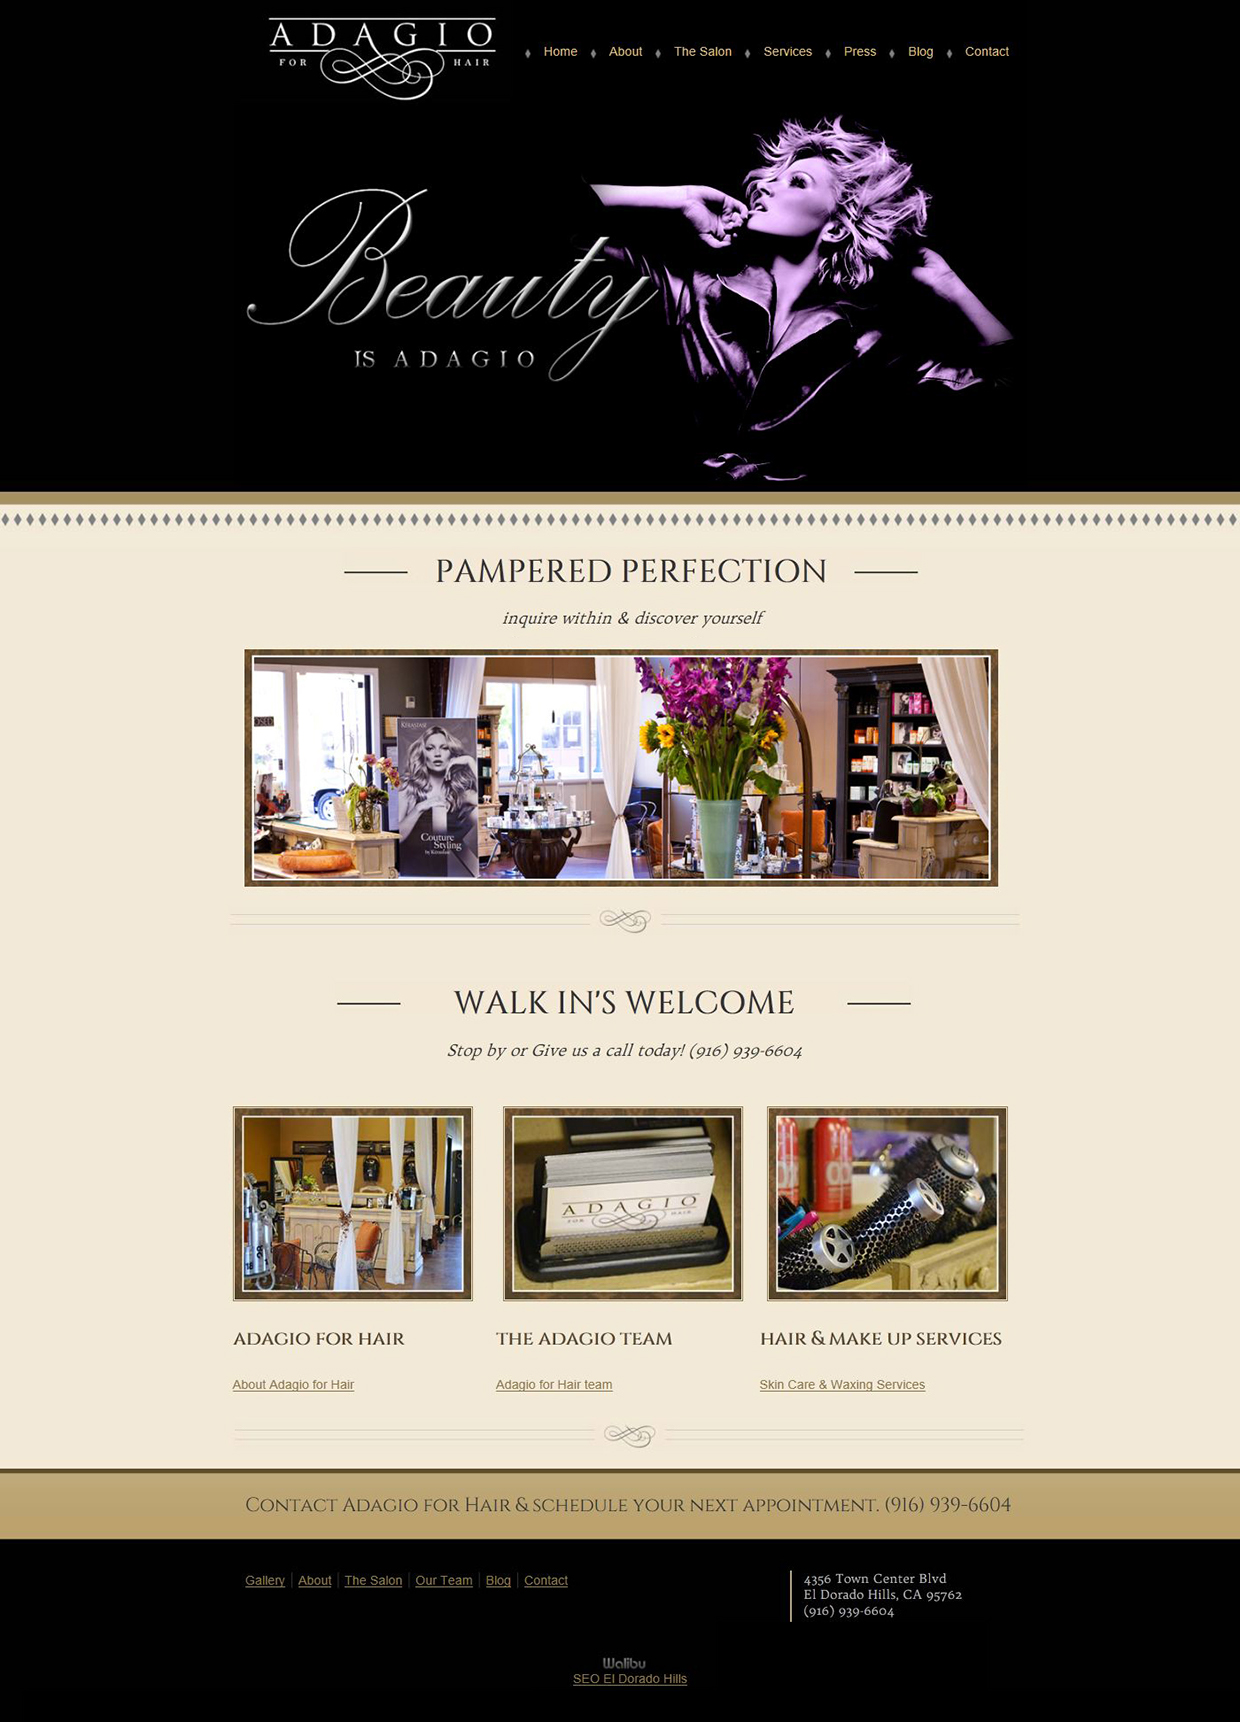 Adagio For Hair Website Design